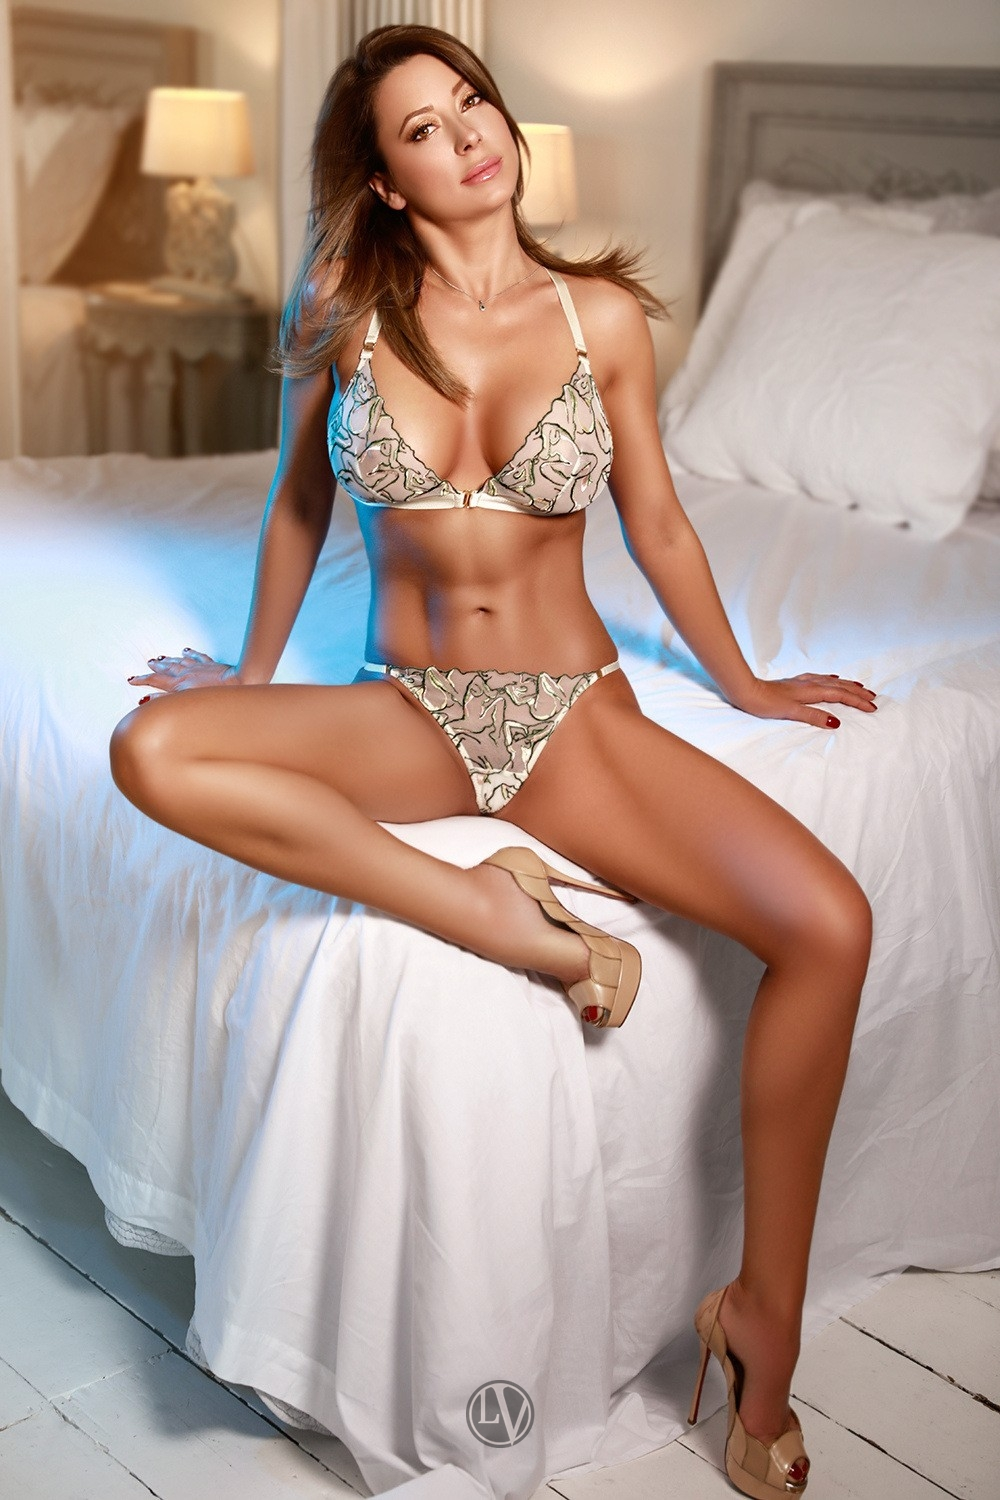 London escort Grace sitting on the bed in her underwear and heels